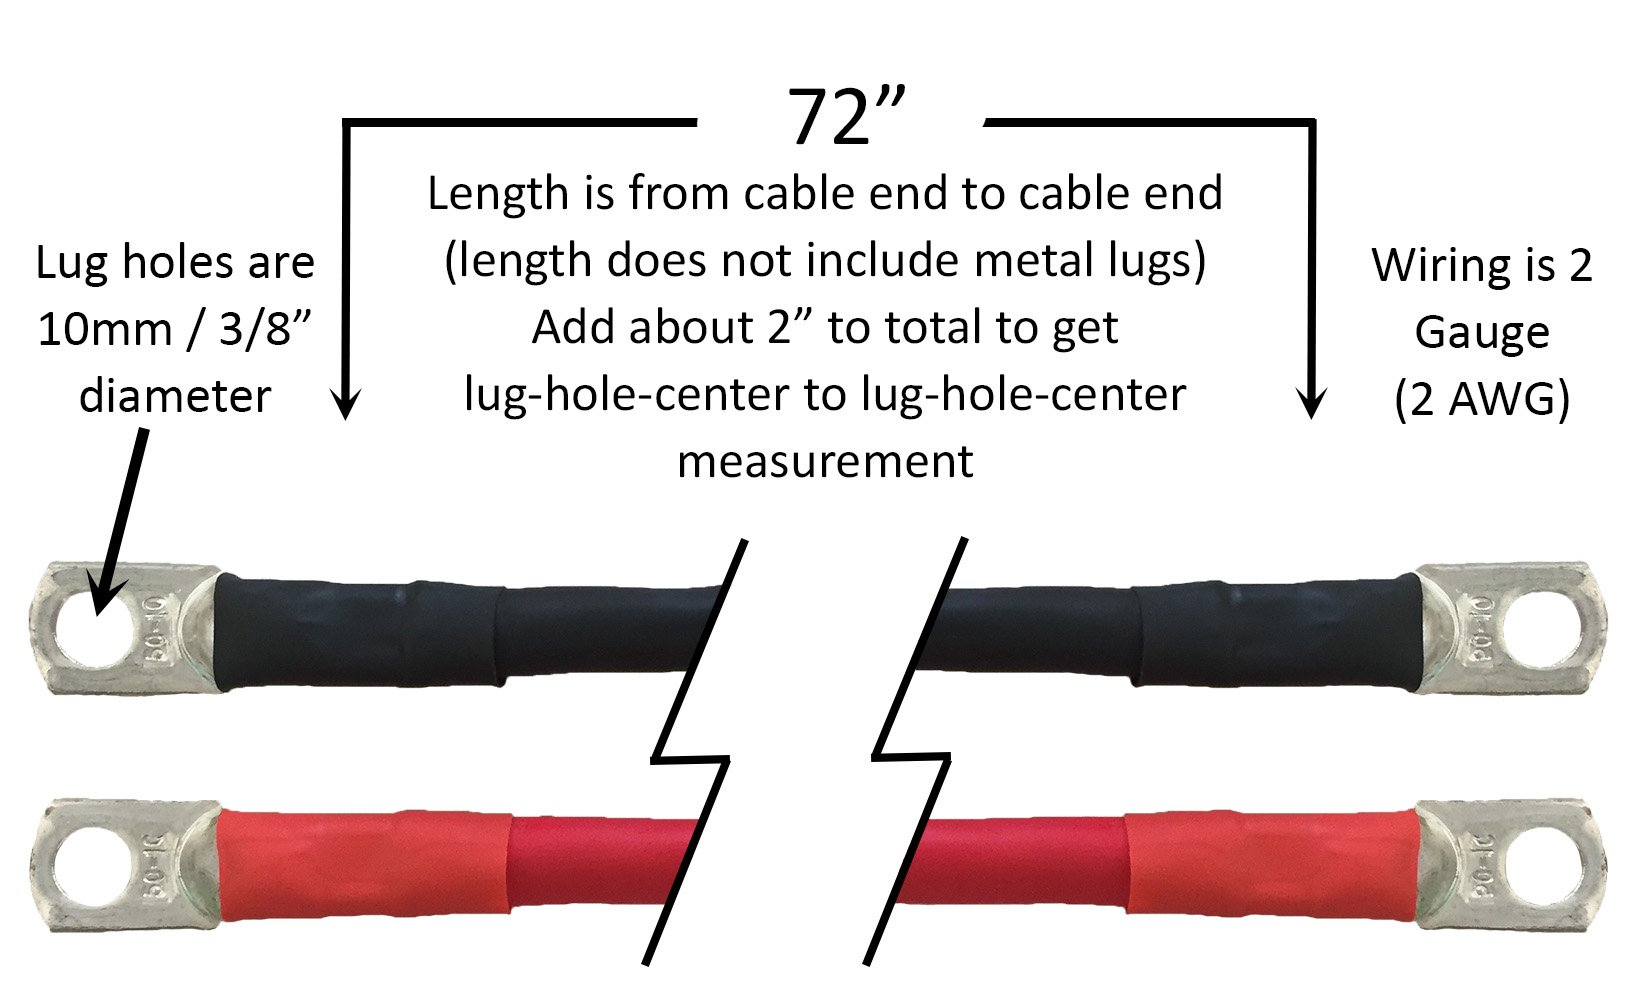 Truck Upfitters 72'' Pair of 2 AWG Black & Red Power Cables for Inverters, Solar Panels, Car, Truck, RV, and Marine Applications